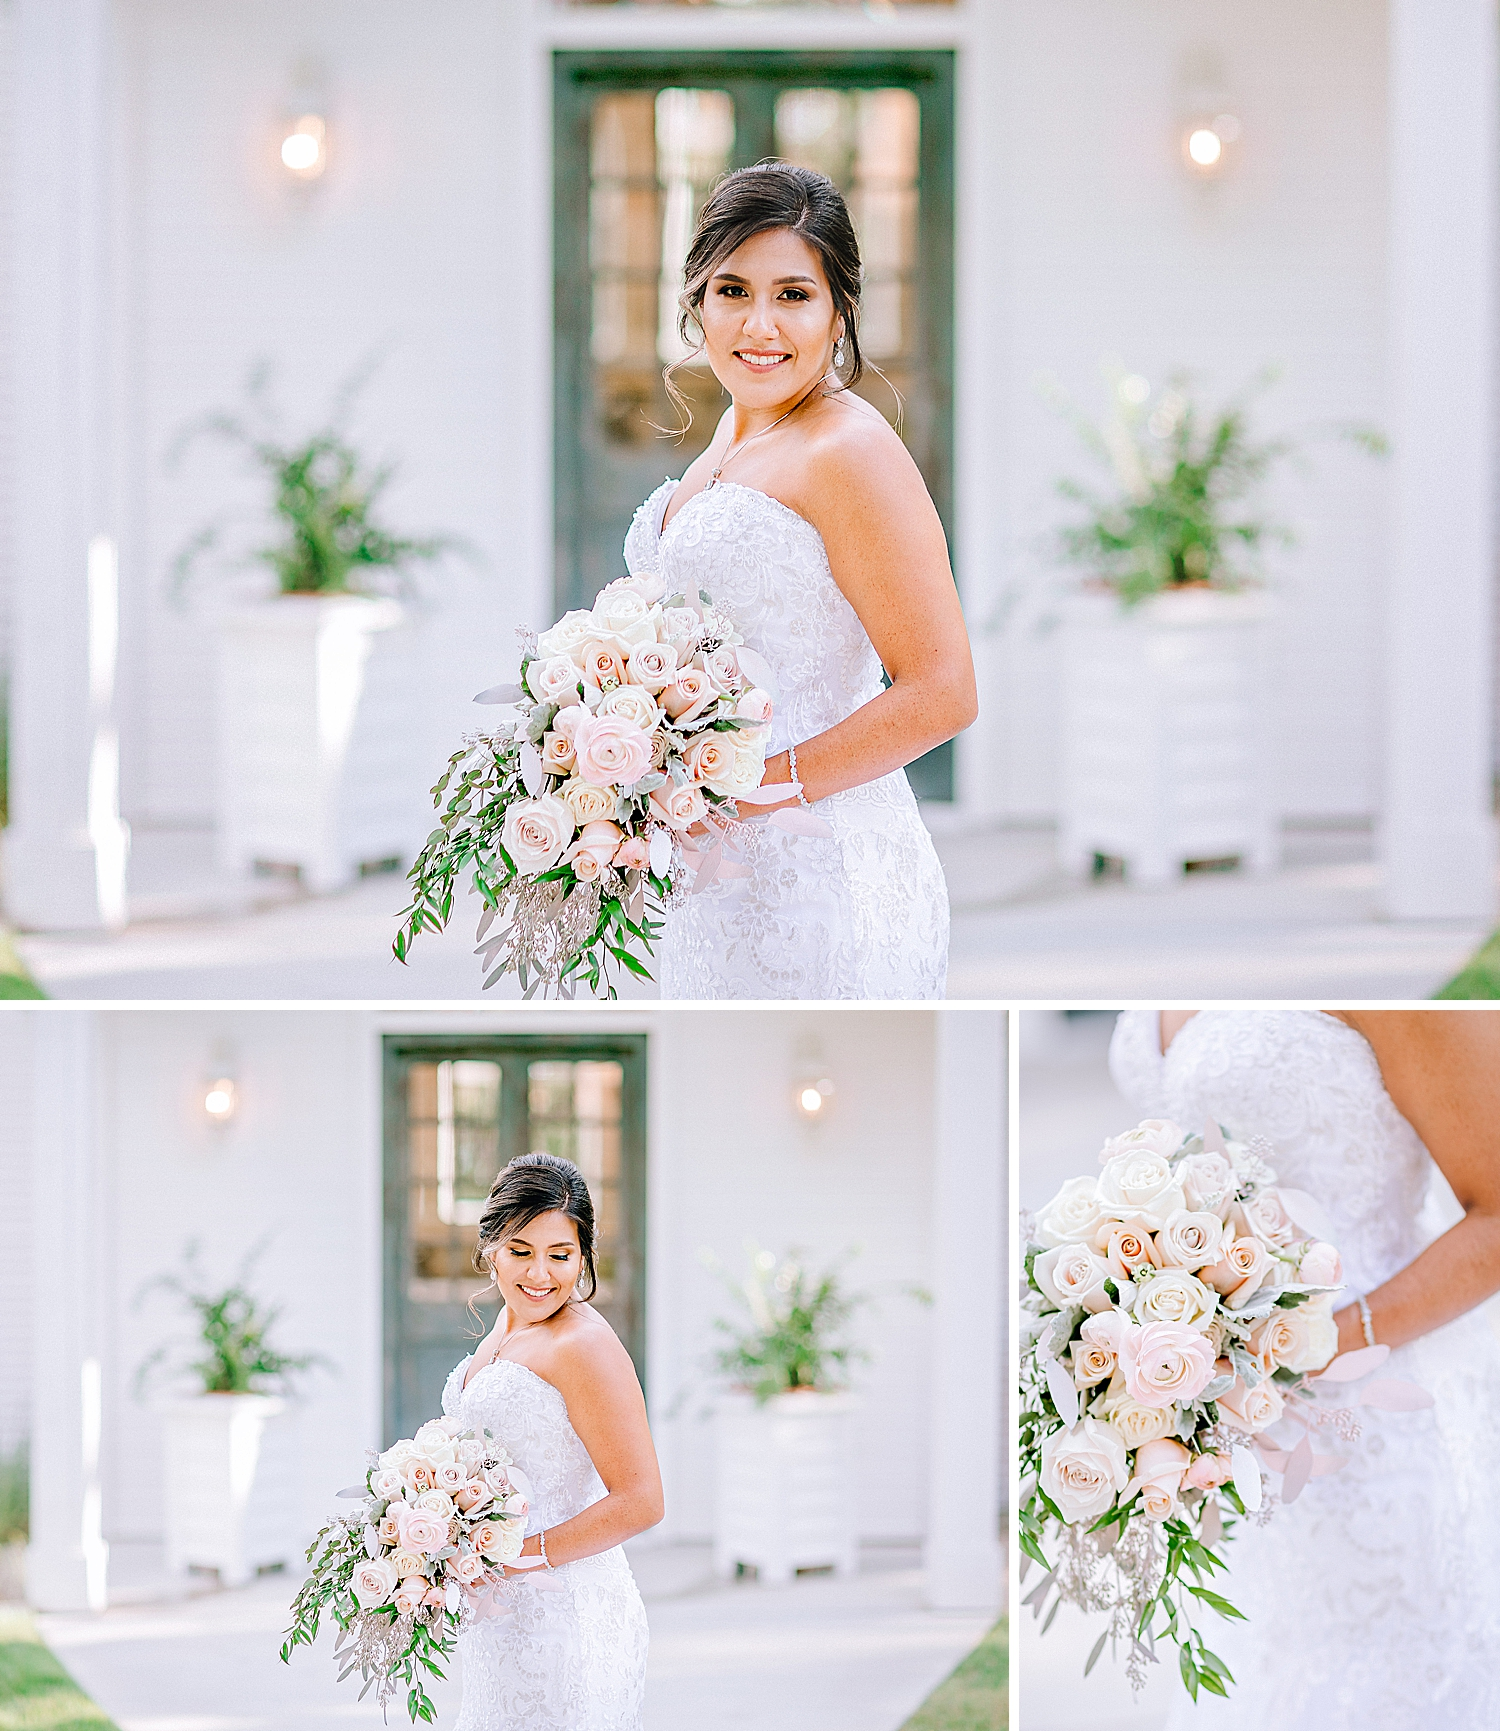 Carly-Barton-Photography-Bridal-Photos-Chadelier-of-Gruene-New-Braunfels-Wedding-Photographer_0004.jpg